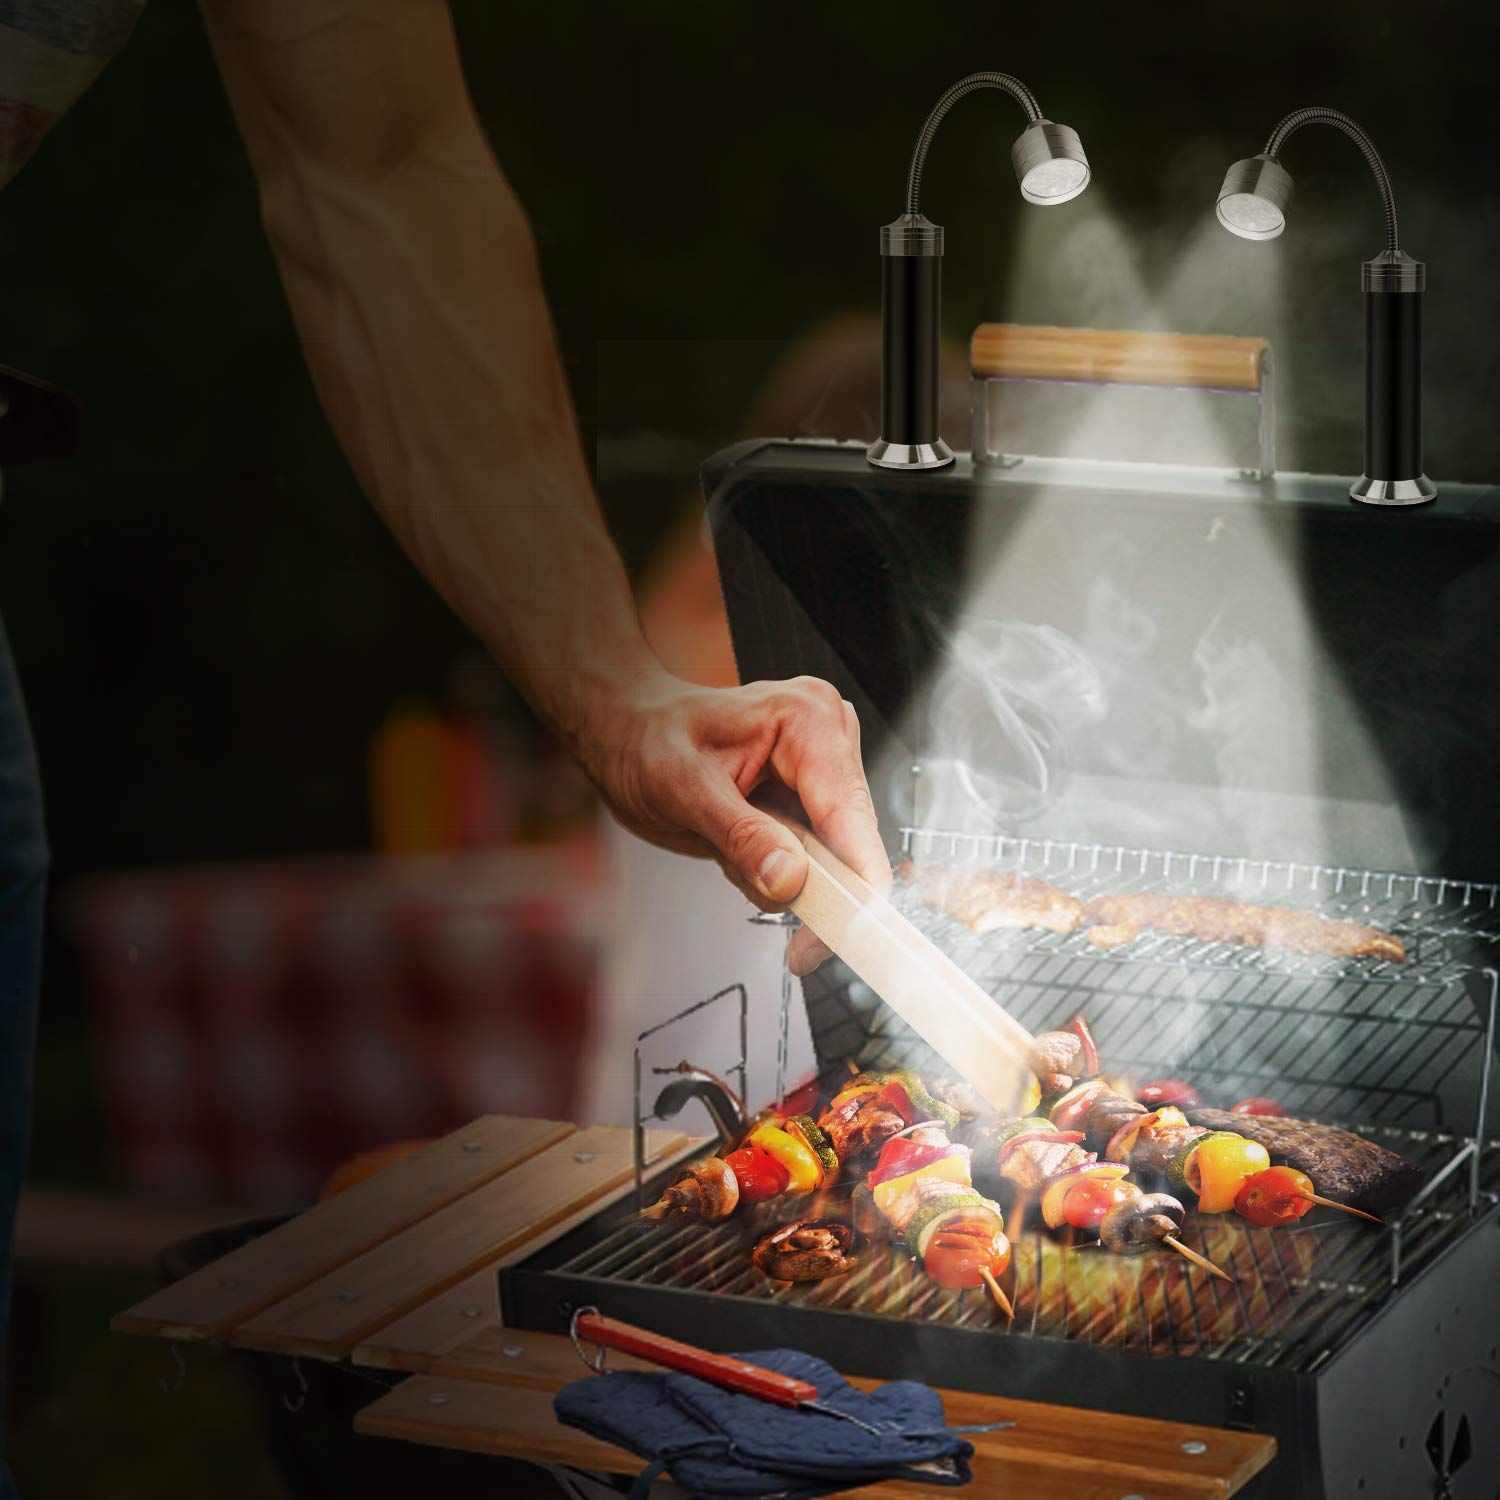 Magnetic Grill Light For Bbq Grill Light Barbecue Grill Bbq Grill